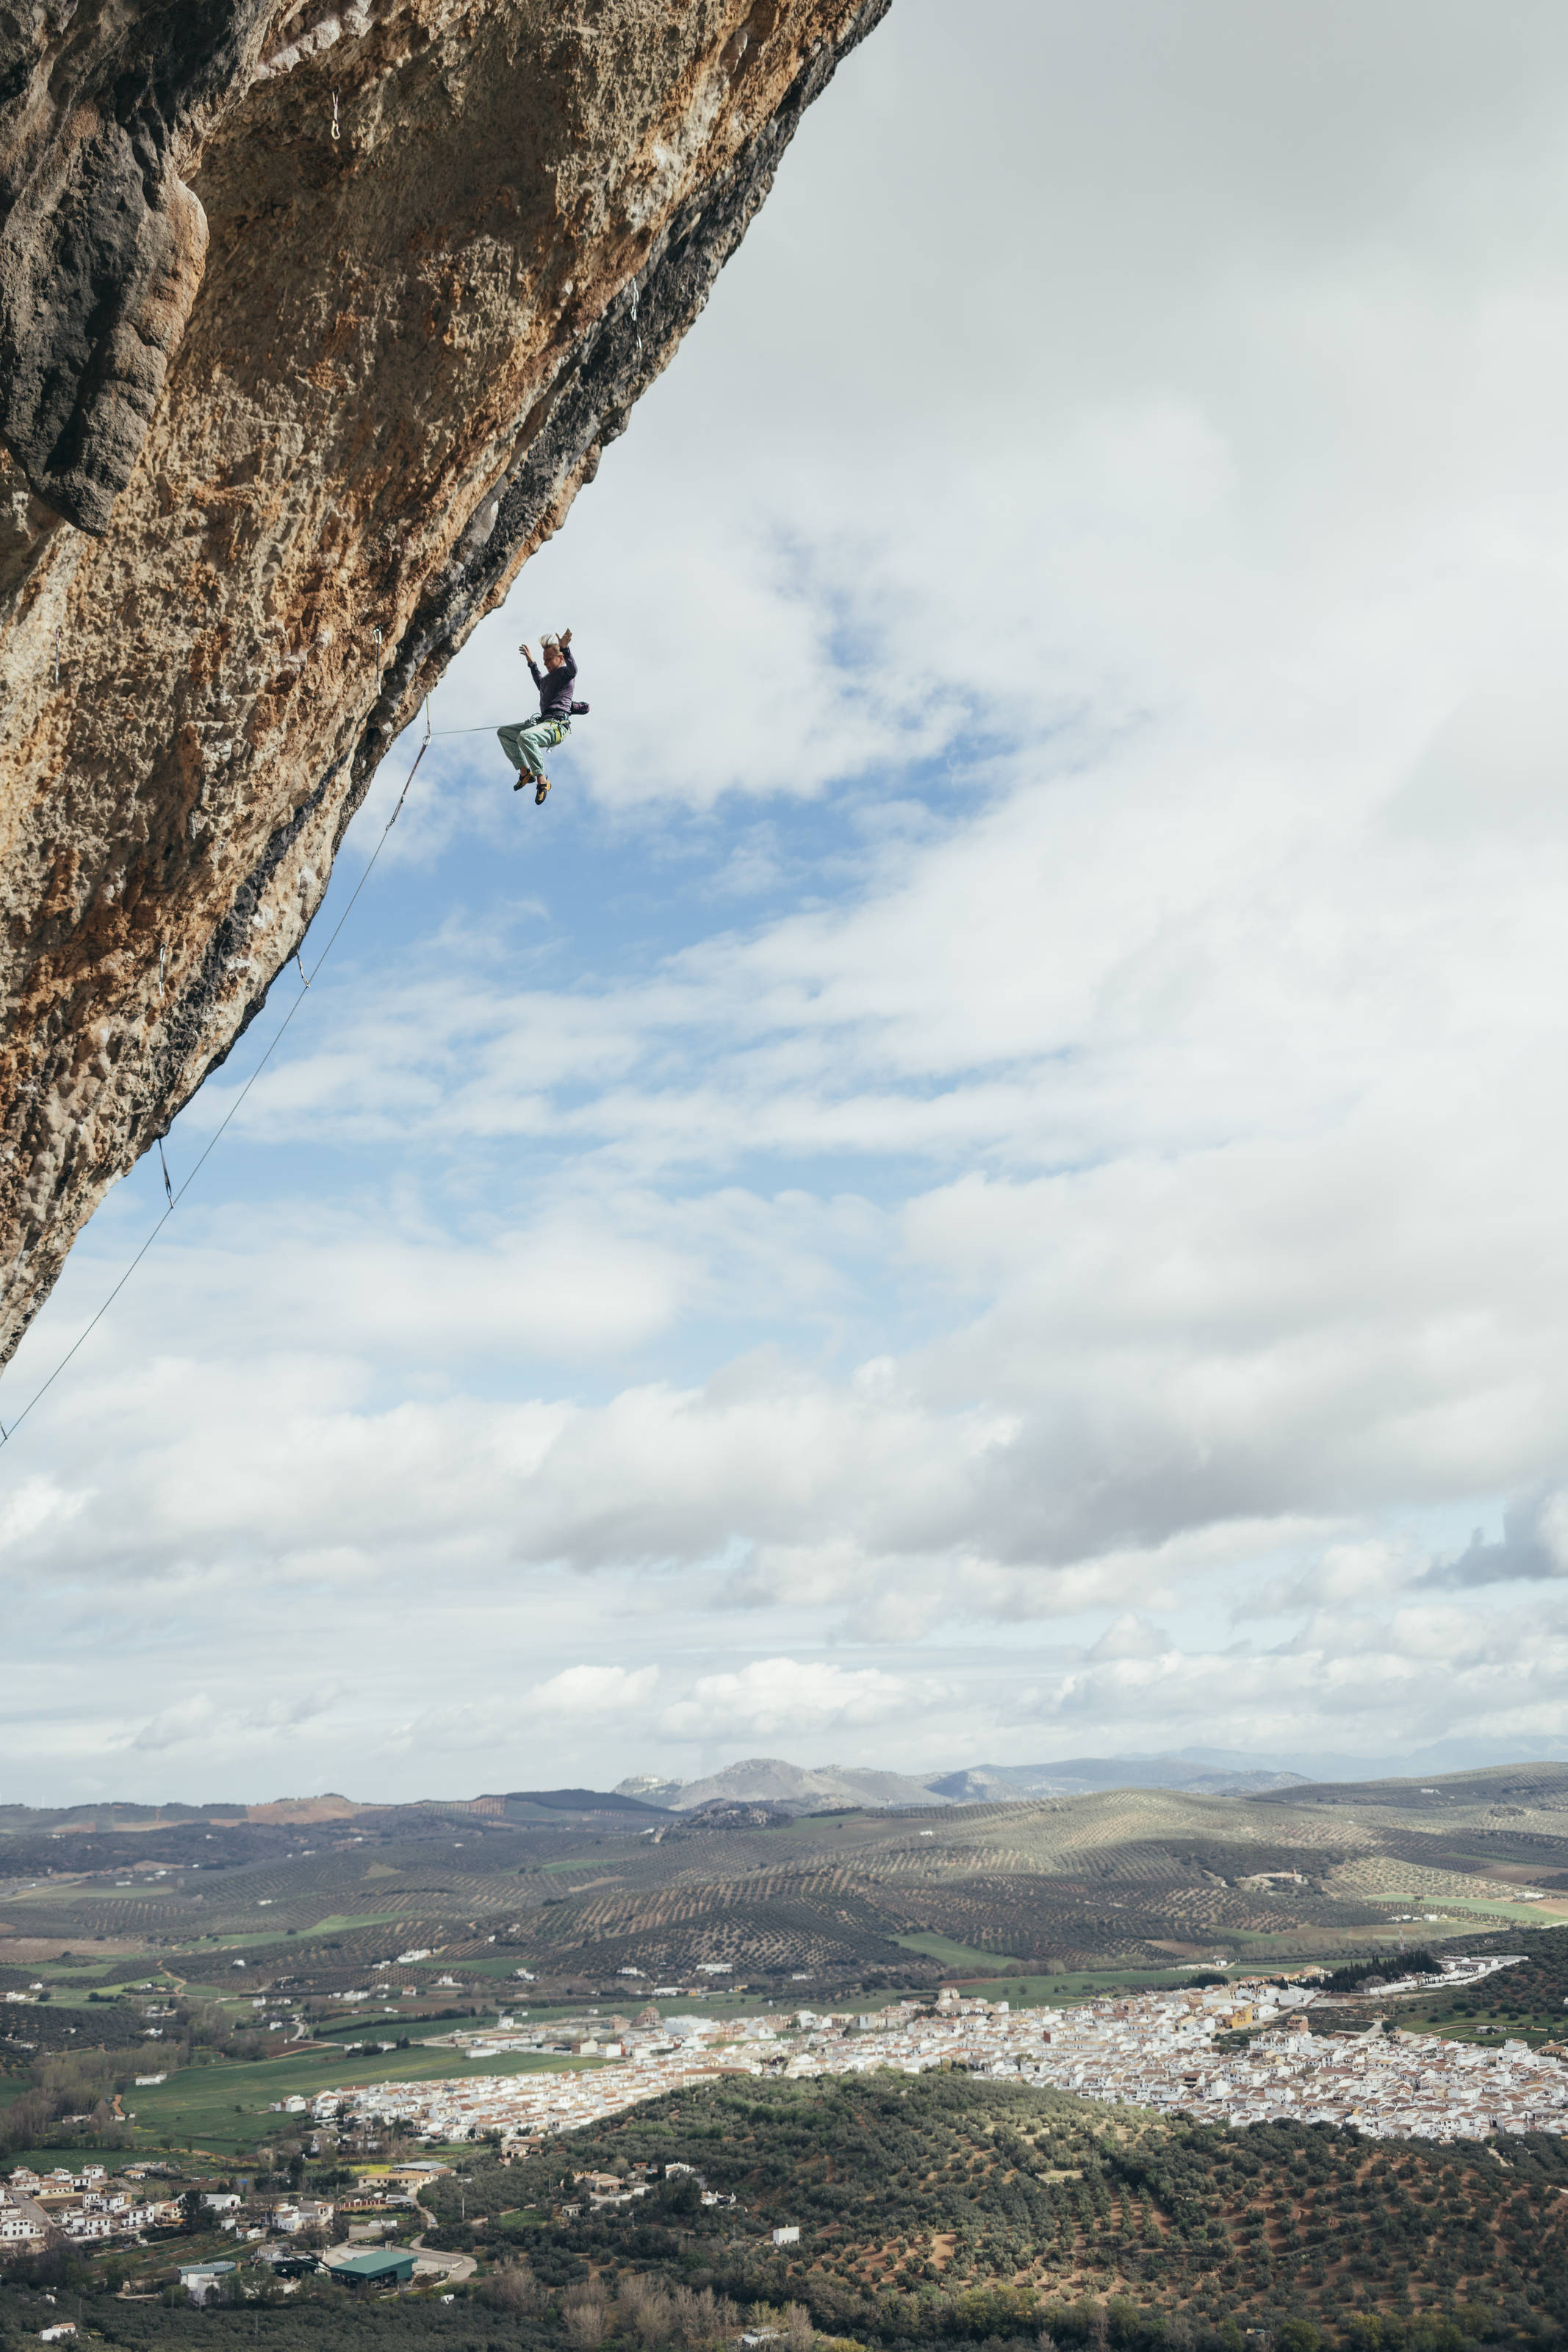 Eiter makes climbing history - ASC - Action Sports Connection